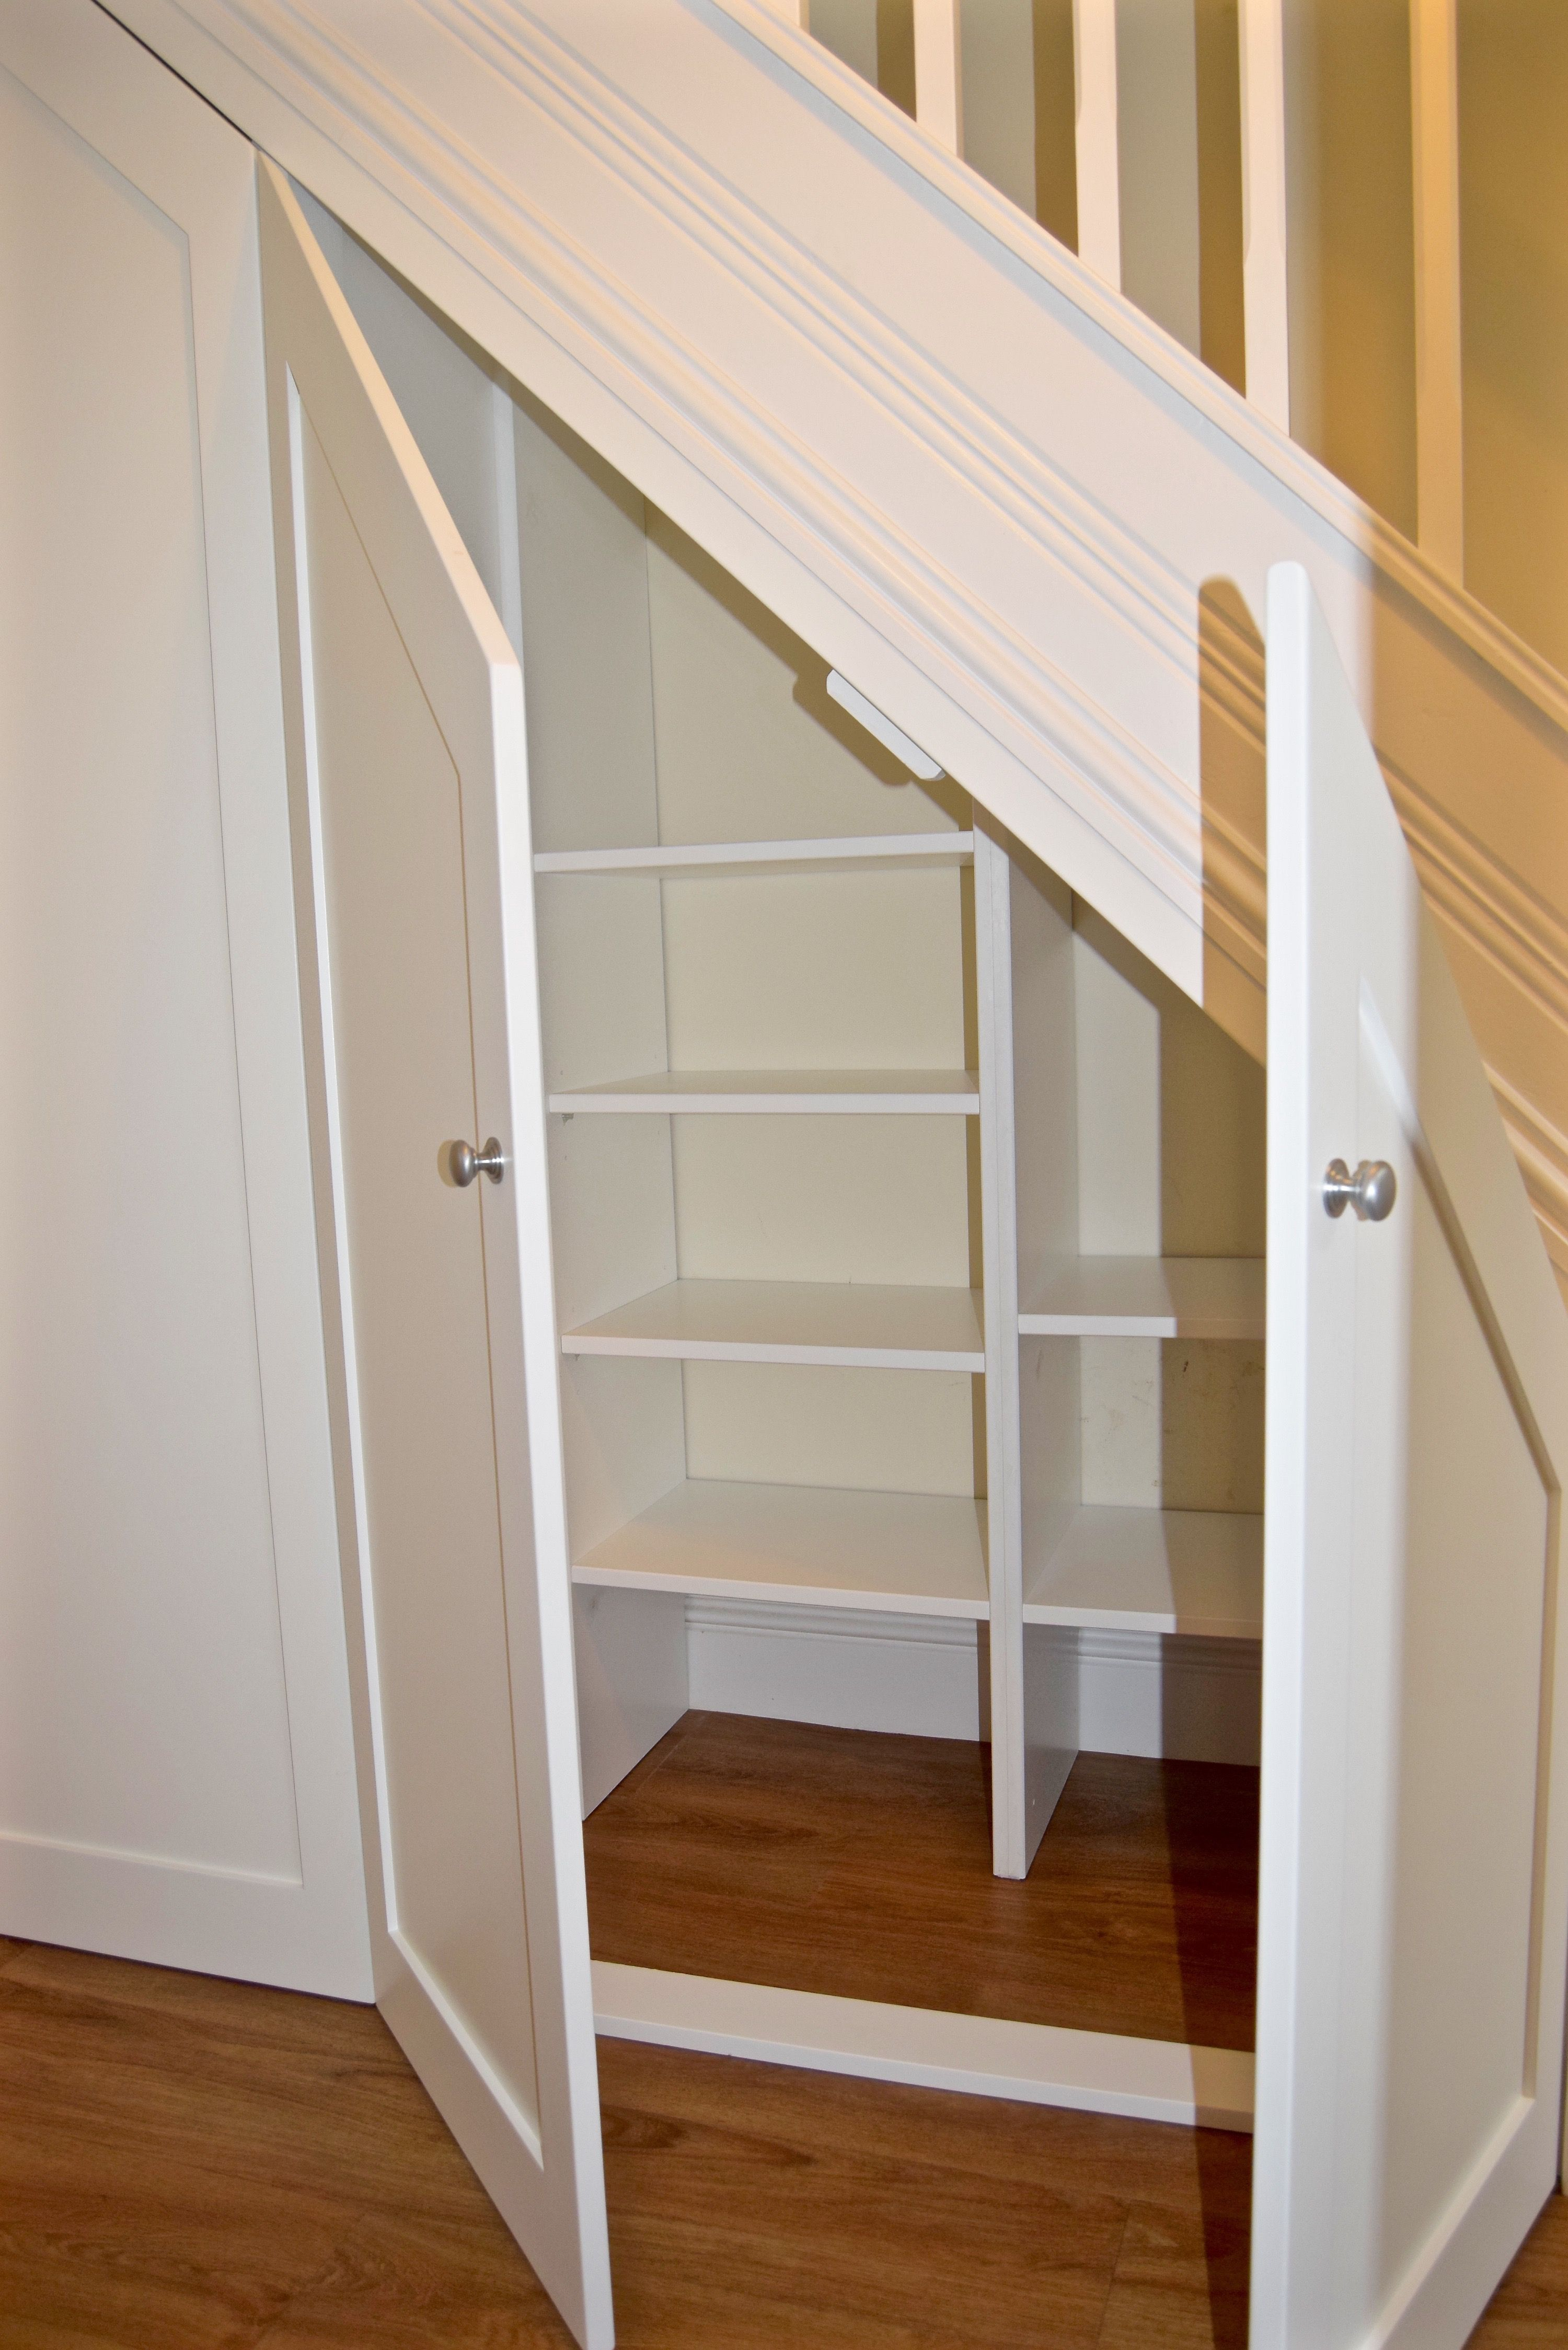 Best Under Stair Cabinets With Internal Storage By Cabinet Maker Gill Martinez Www Gillmartinez Con 400 x 300